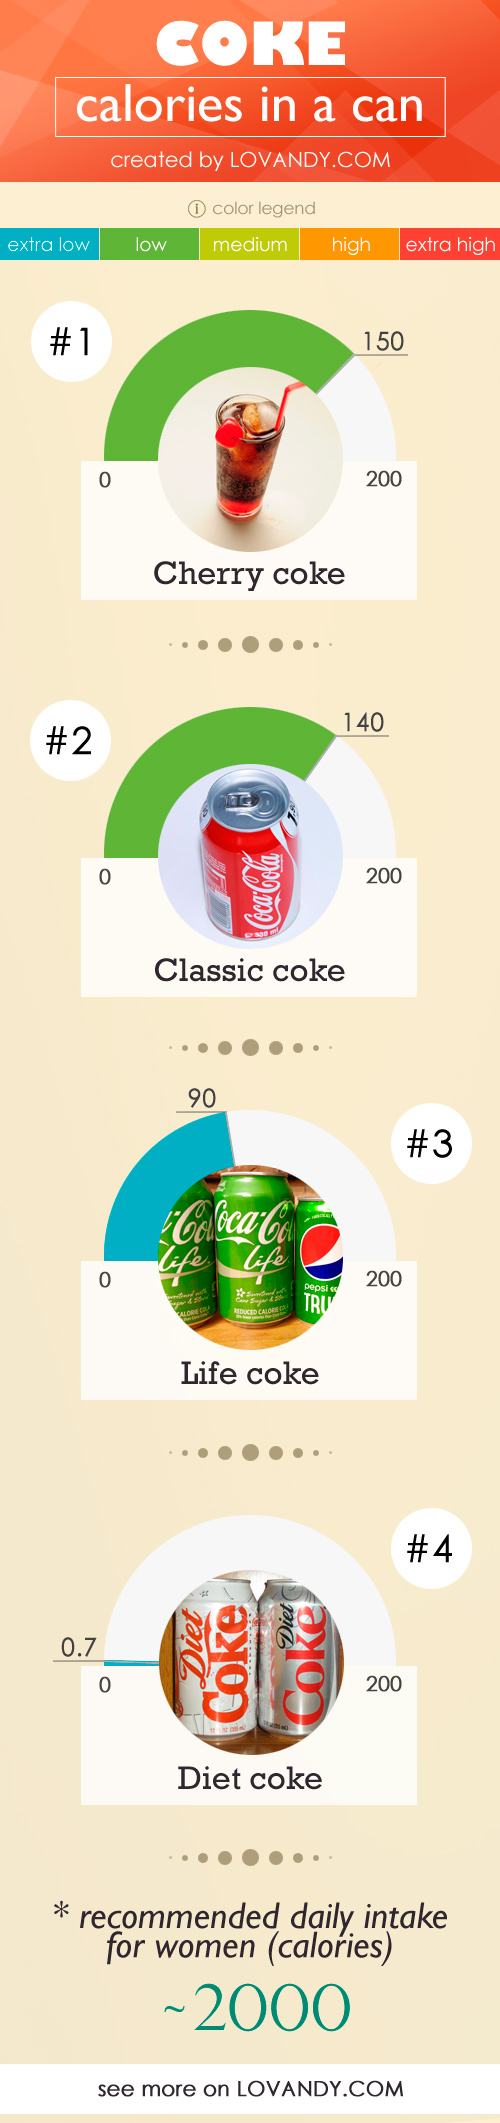 cherry coke calories